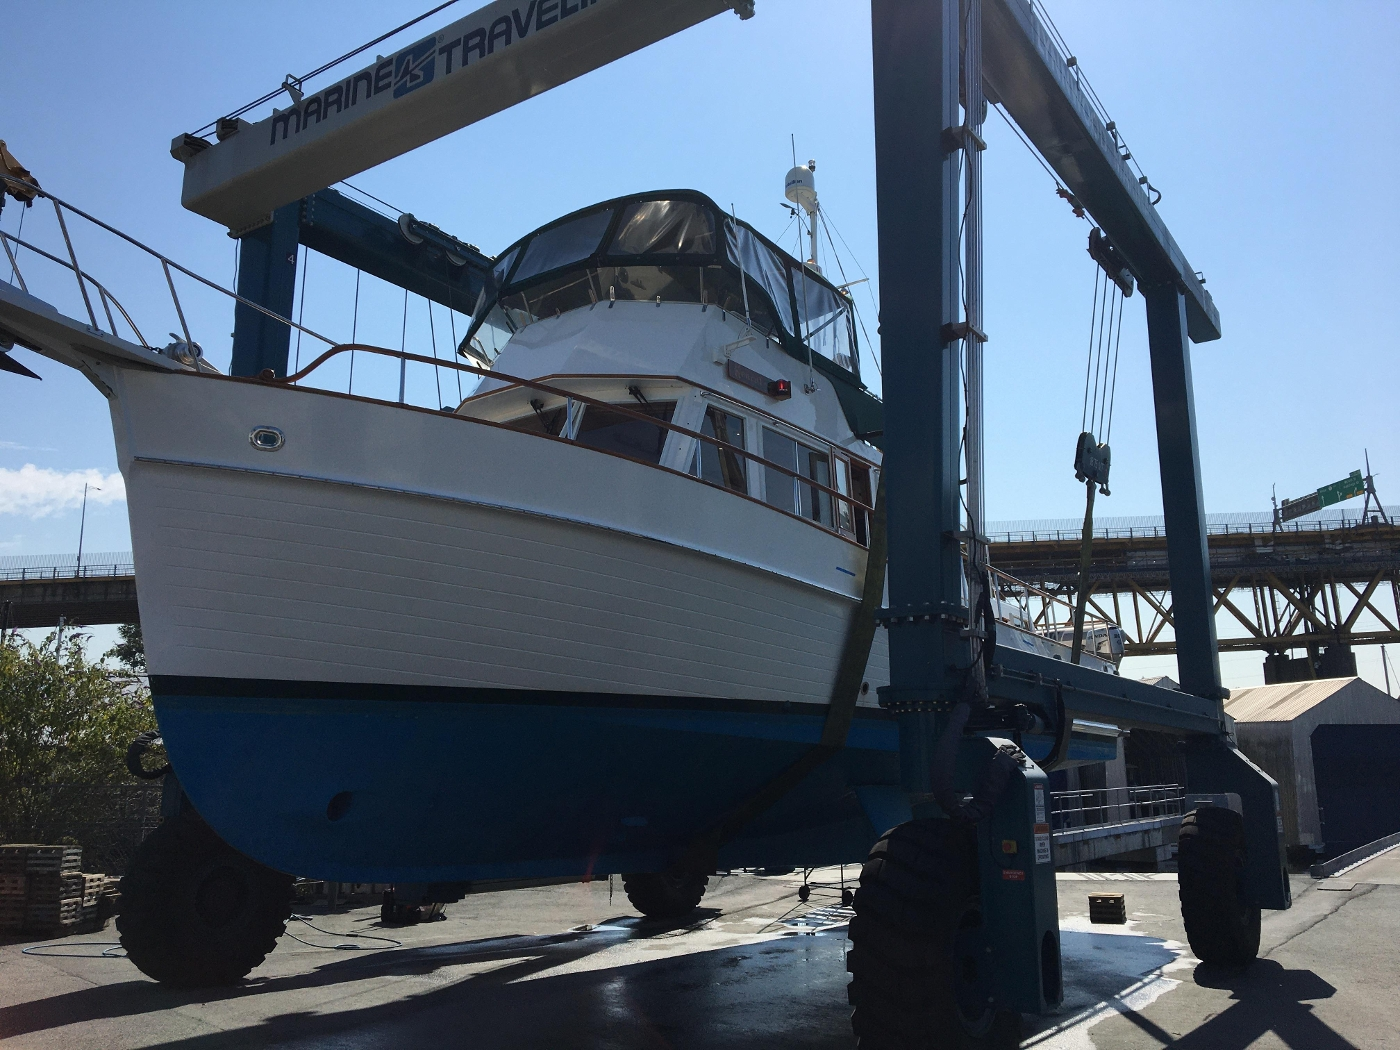 2001 Grand Banks 42 Classic, Haul Out Portside